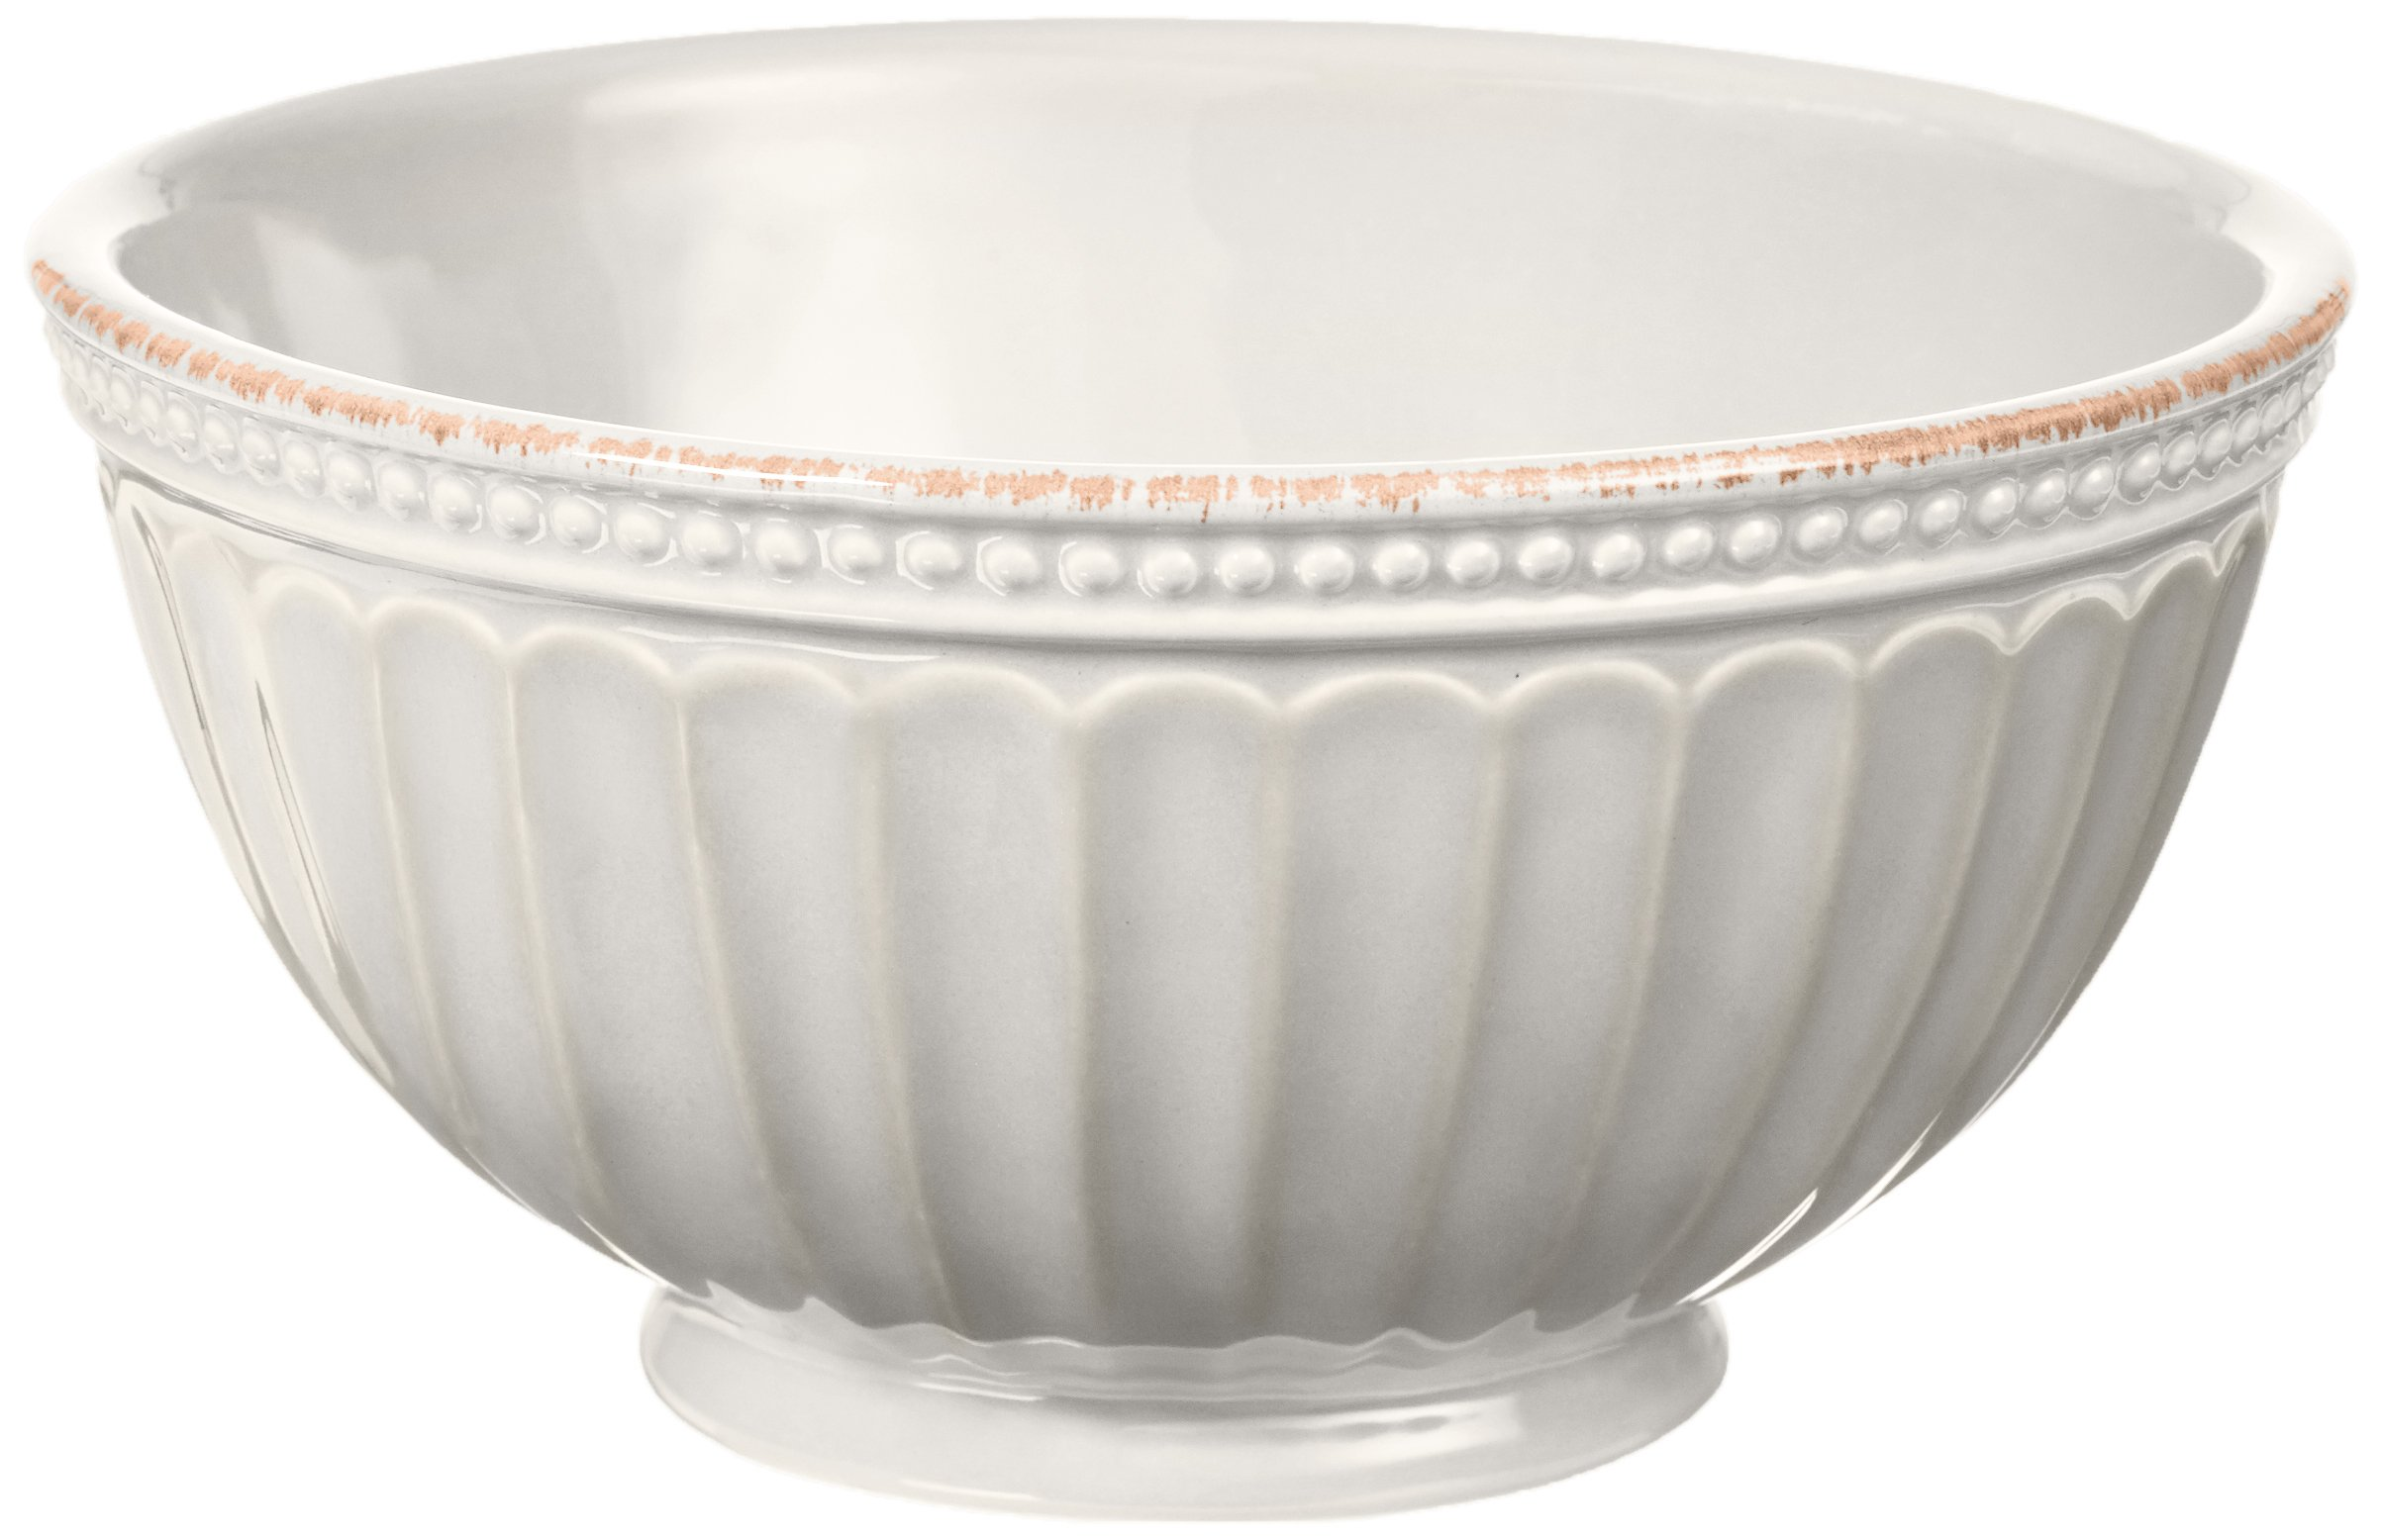 Lenox French Perle Everything Bowl, White by Lenox